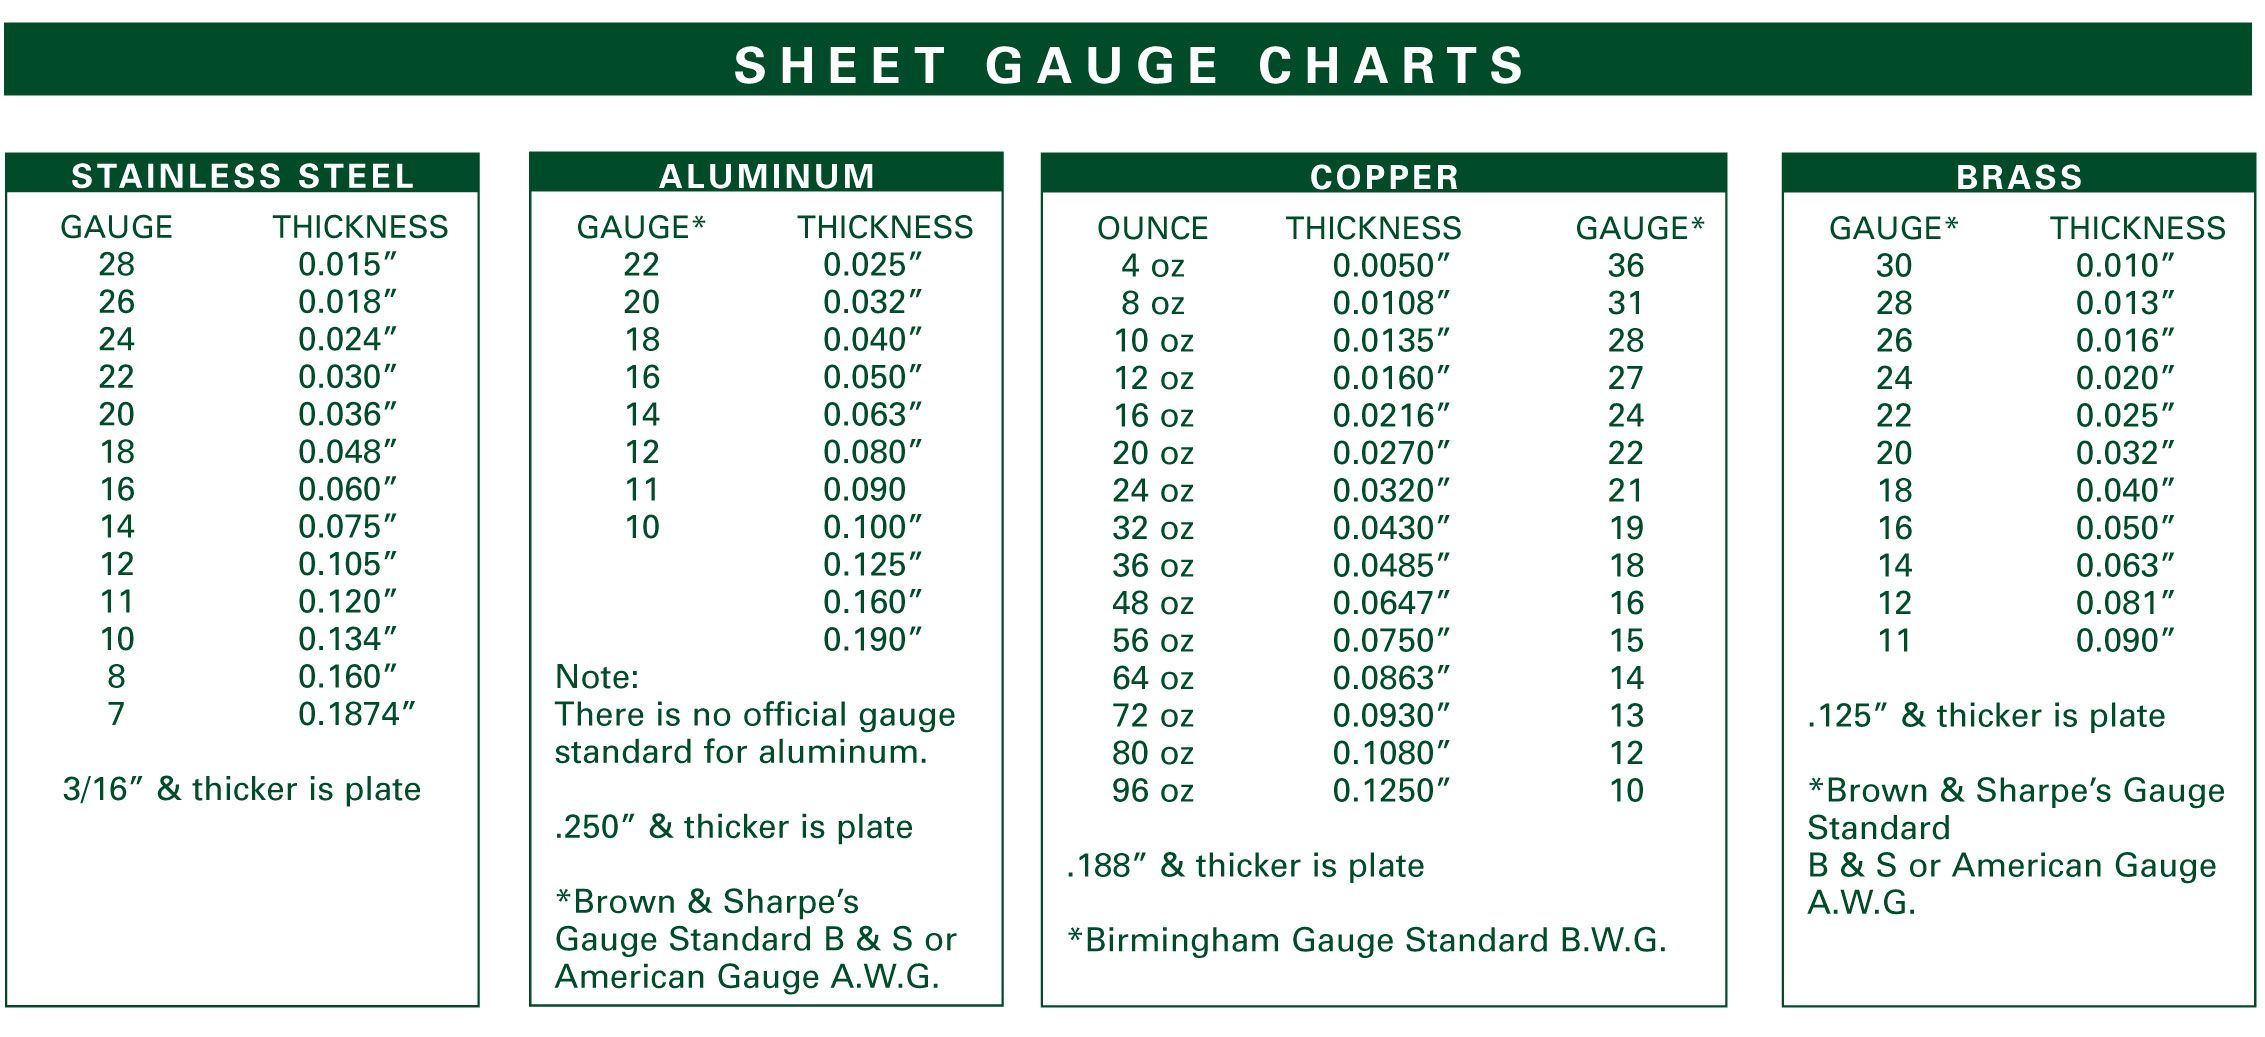 Sheet Gauge Chart 4 Jpg 2265 1037 Sheet Metal Gauge Sheet Metal Shop Metal Gauge